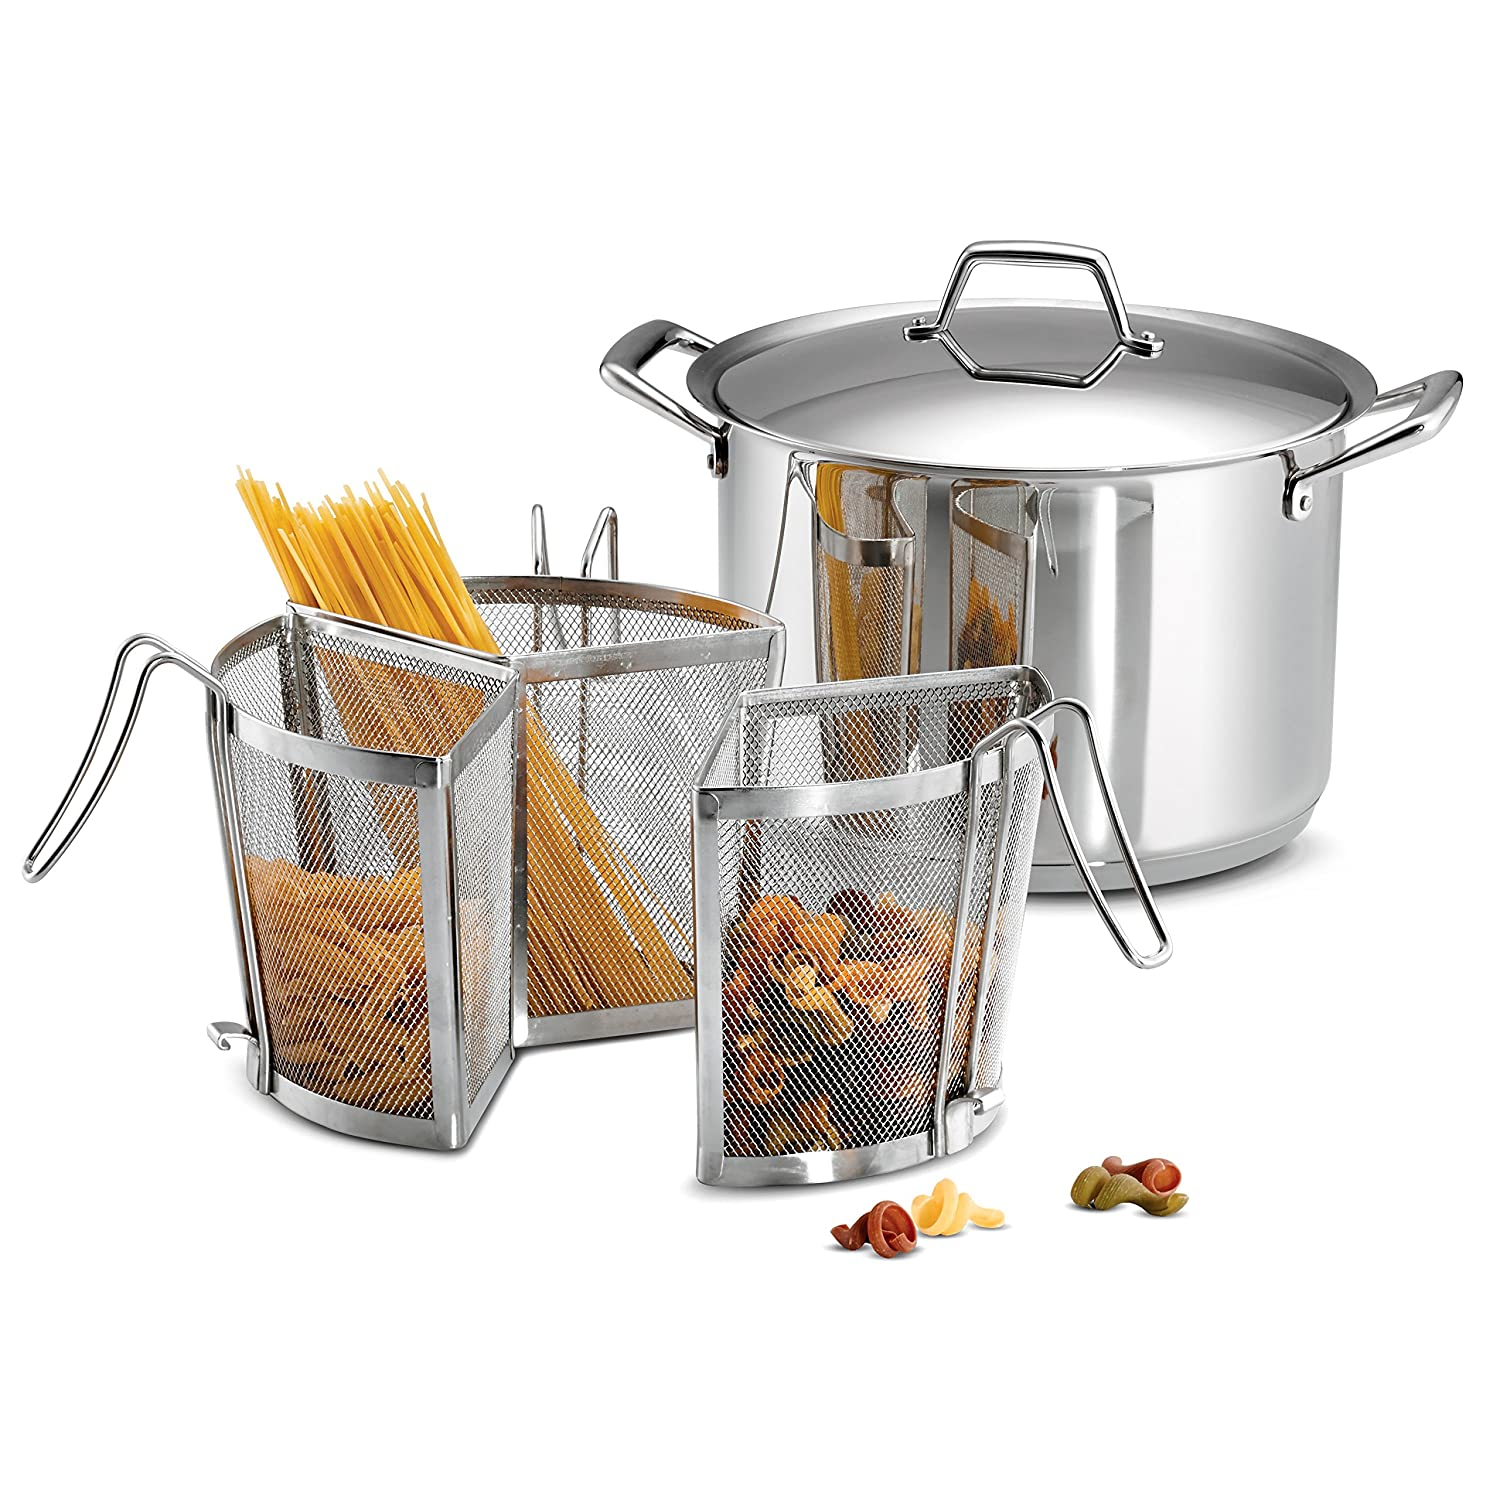 Induction-Ready Pasta Cooking Set